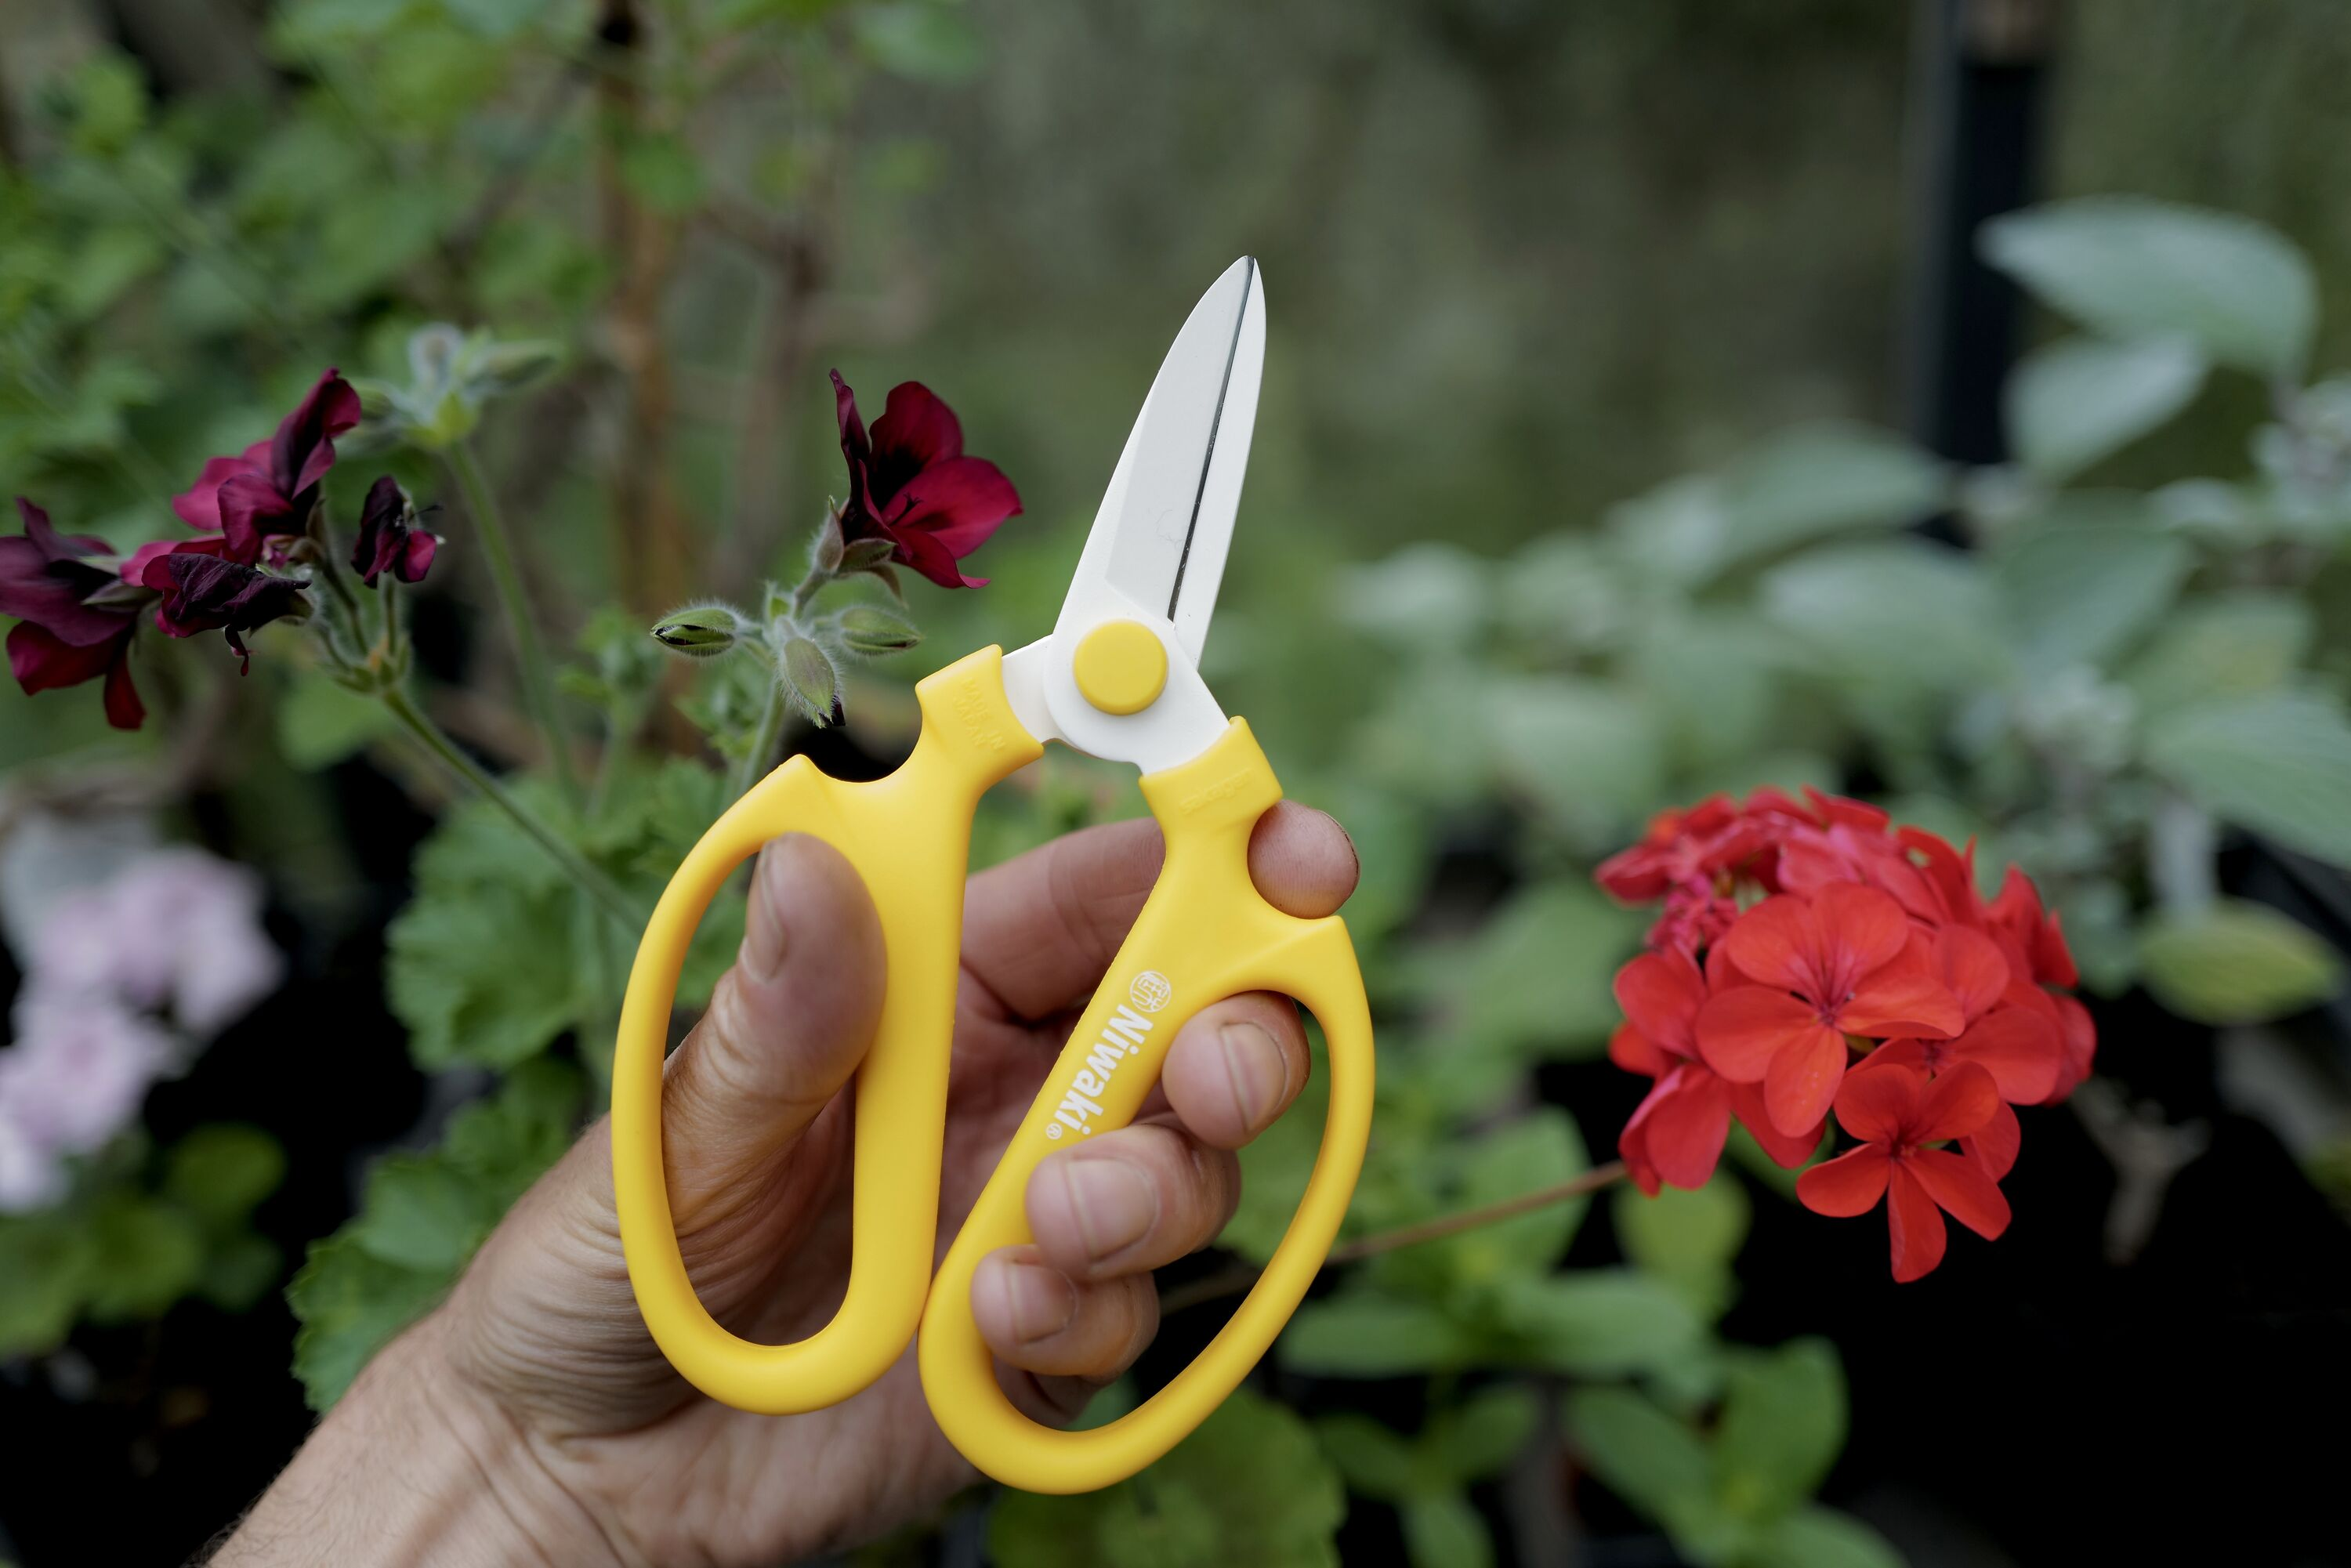 Niwaki x Sakagen Flower Scissors